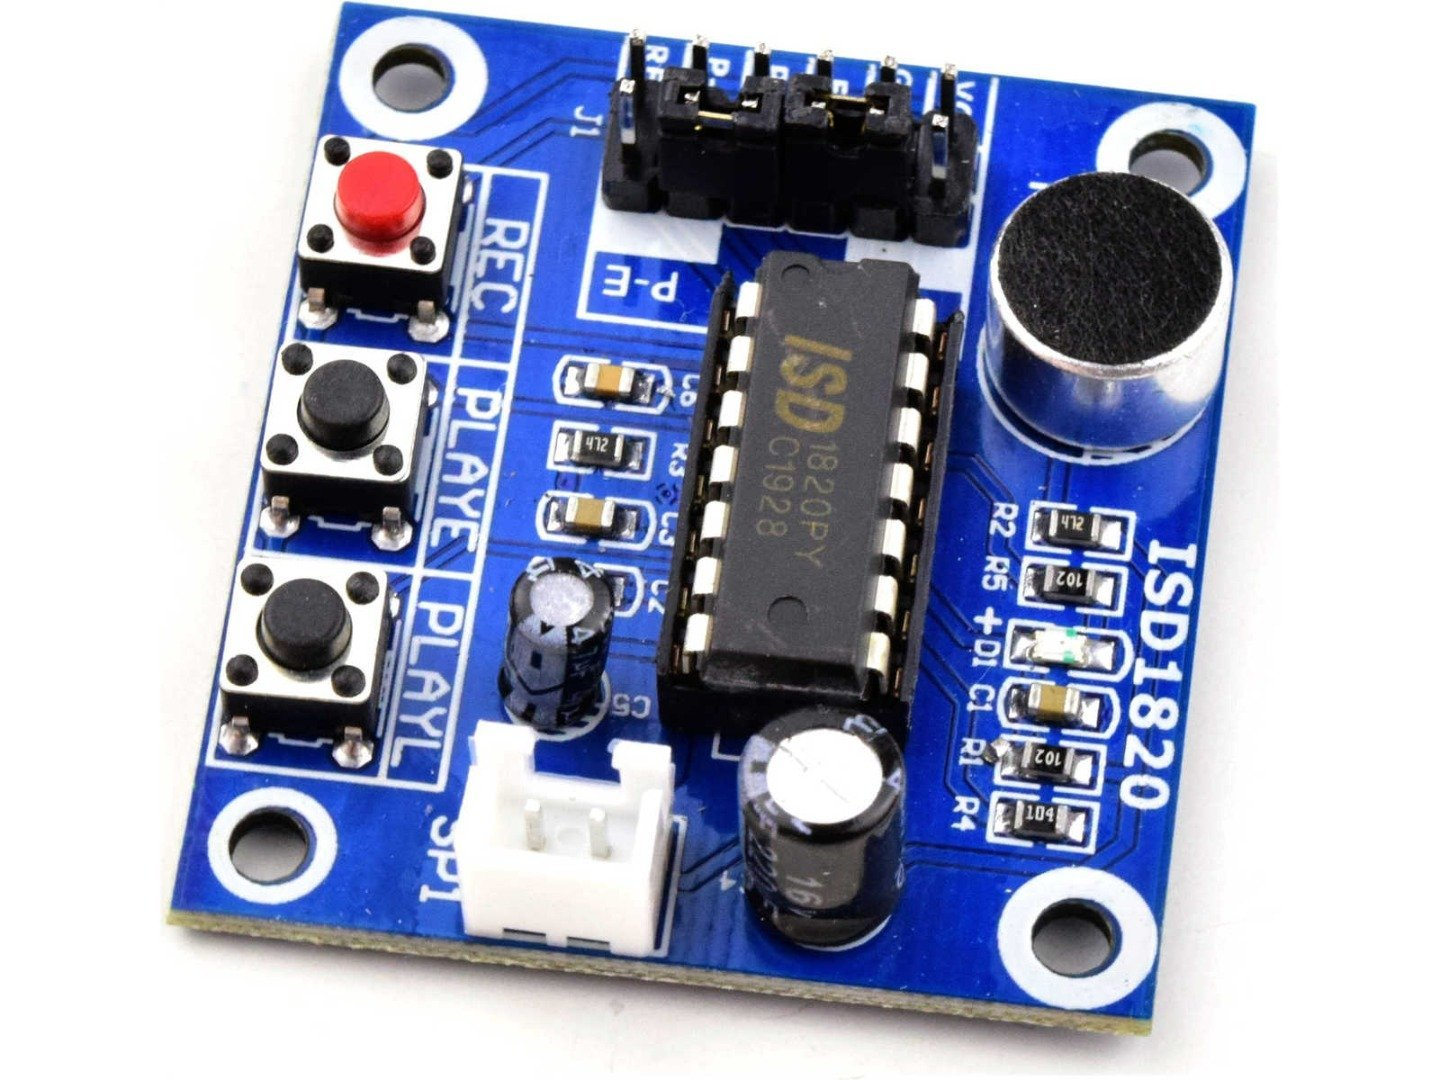 Voice Recording Module 10 s, ISD1820, Mic and Speaker